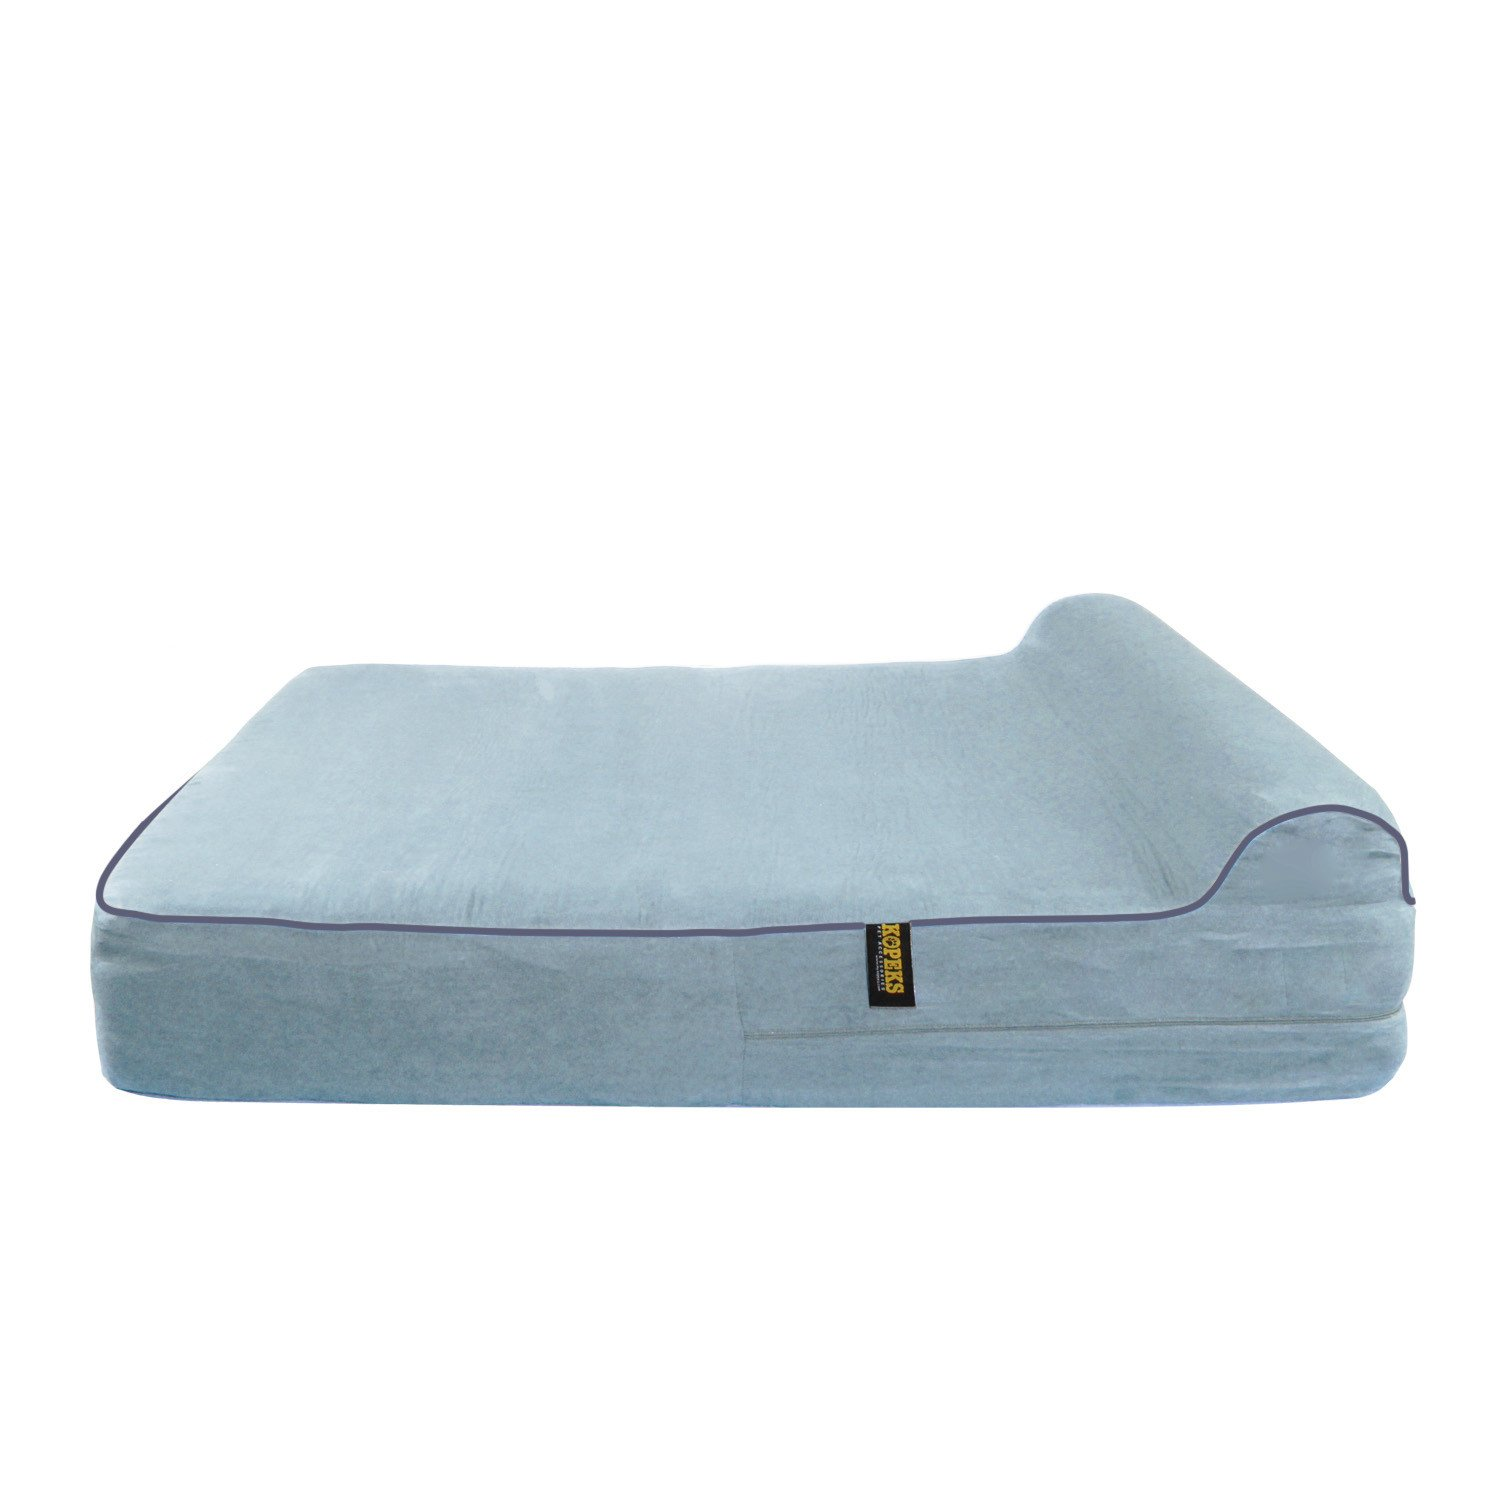 Dog Bed Replacement Cover for KOPEKS Memory Foam Beds - GREY - Extra Large (Jumbo Size)